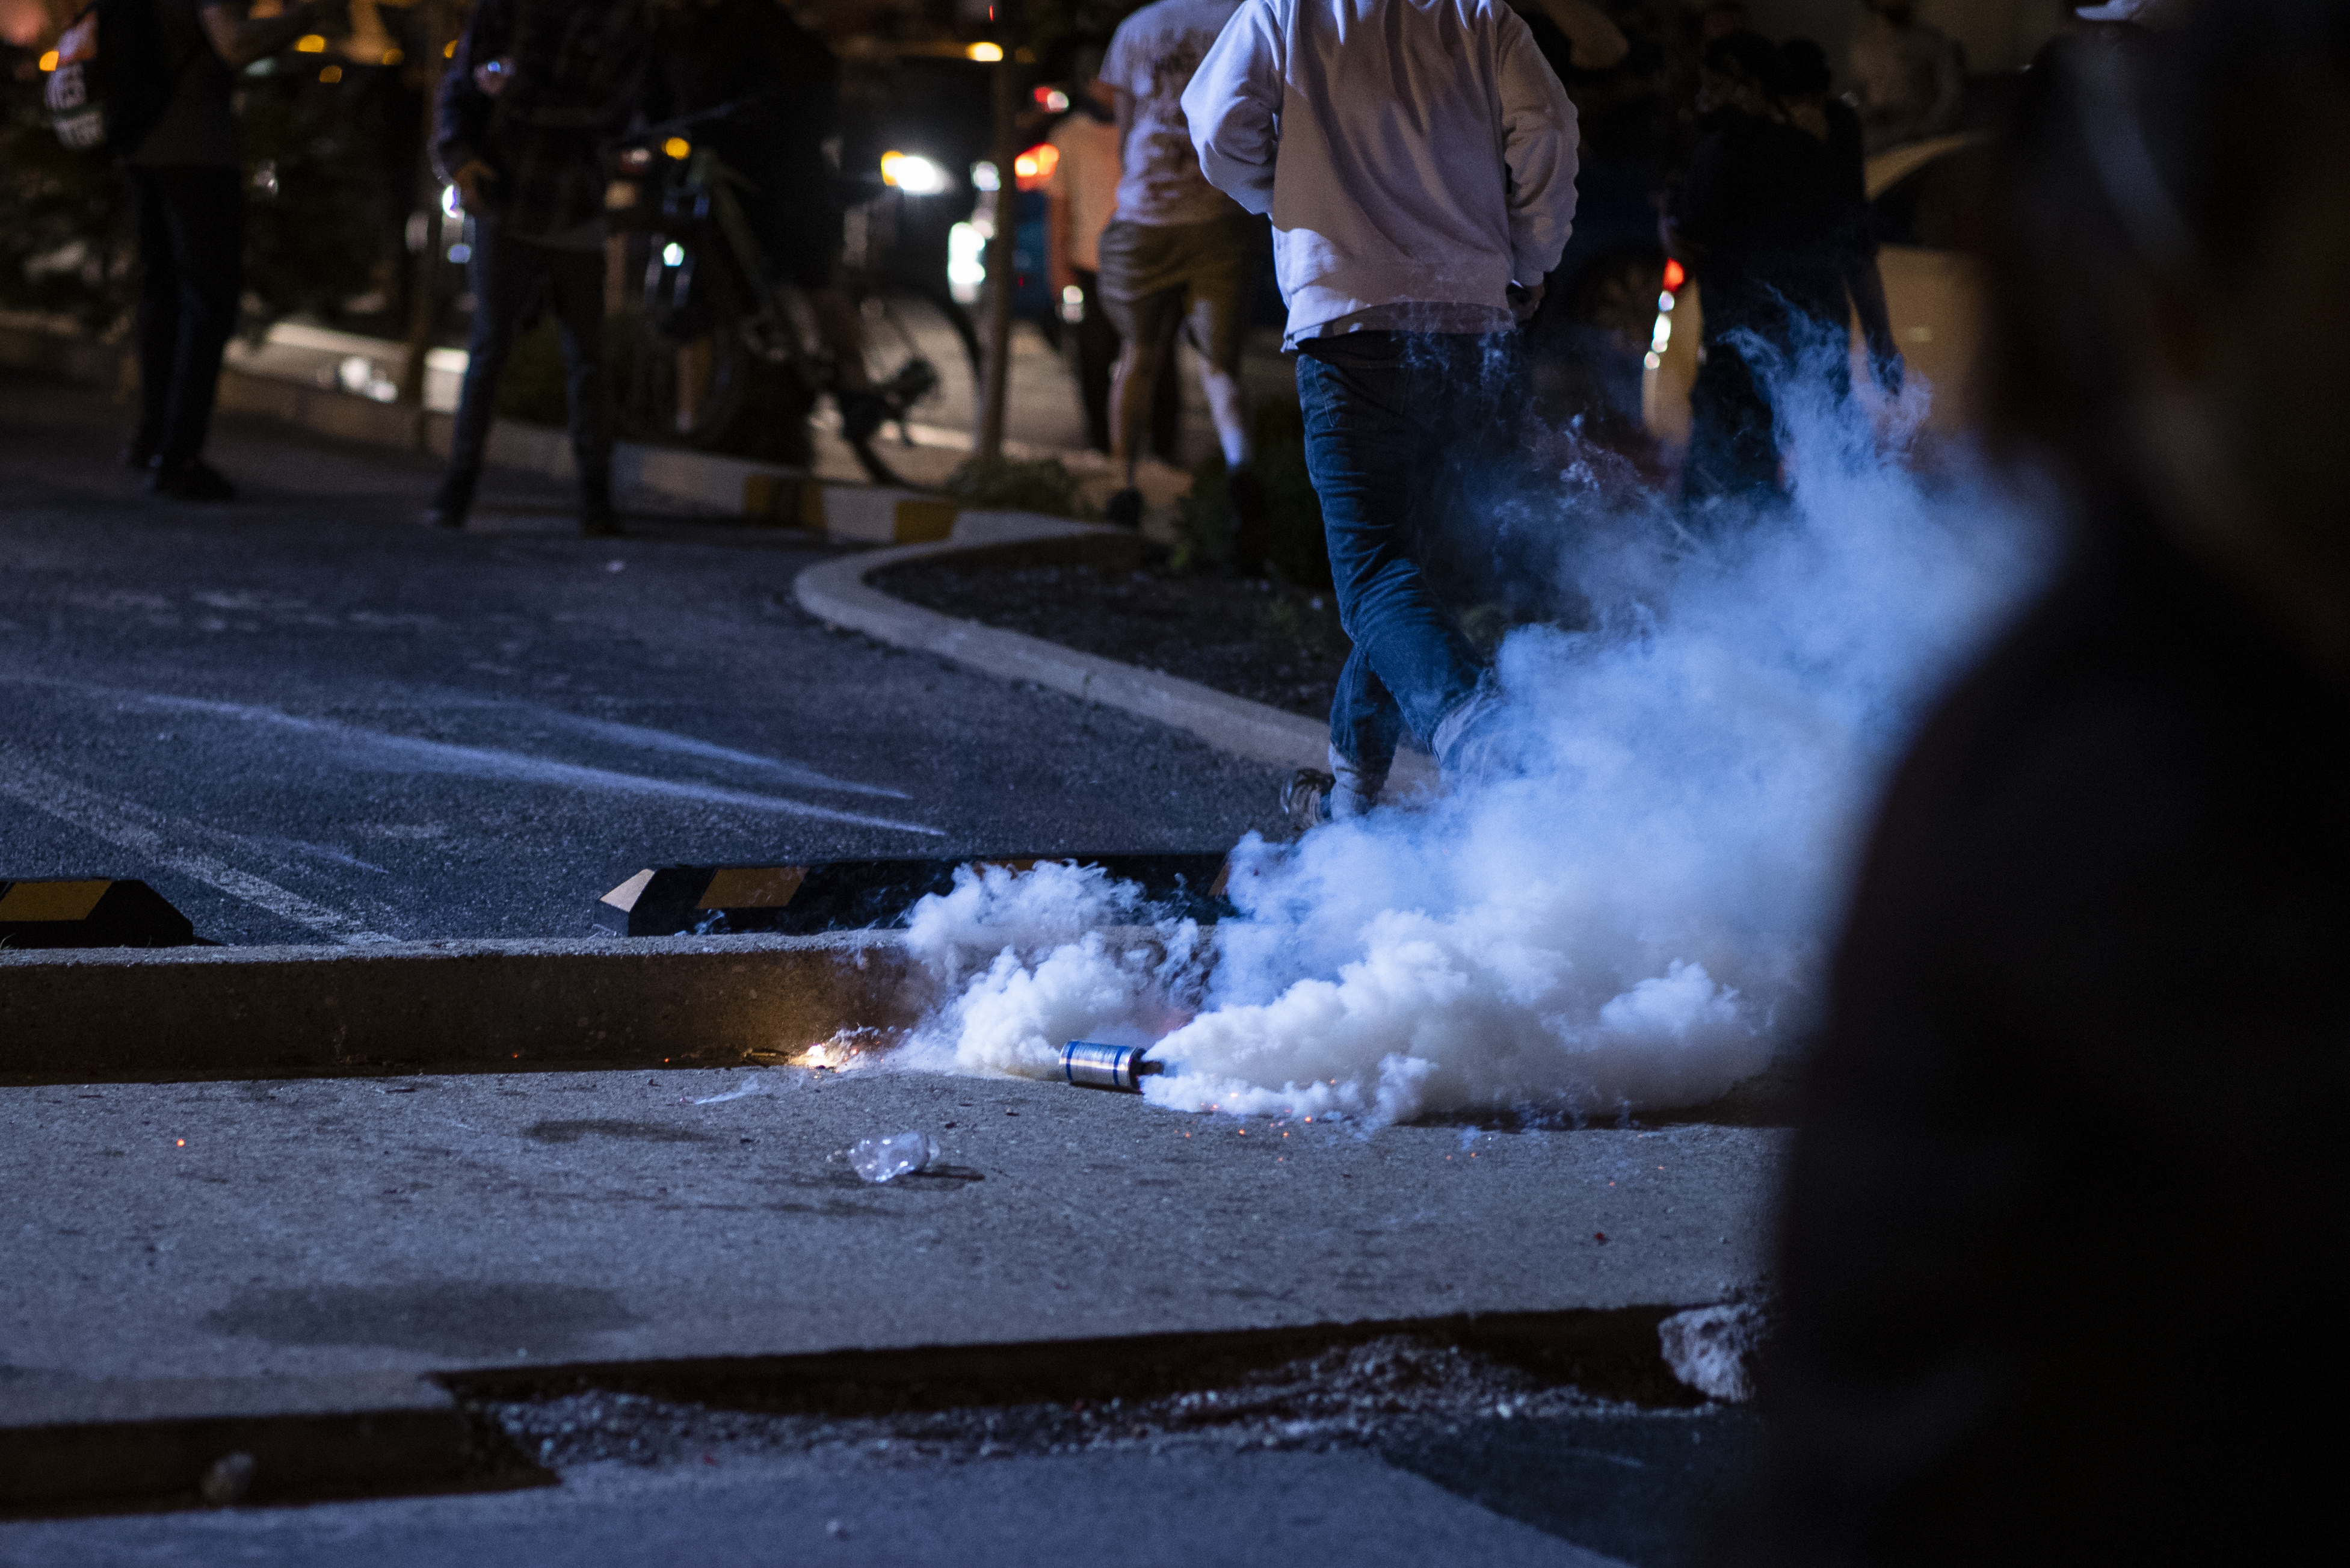 A man in a gray sweatshirt and blue jeans runs away from an active tear gas canister thrown by police on the street in Louisville.